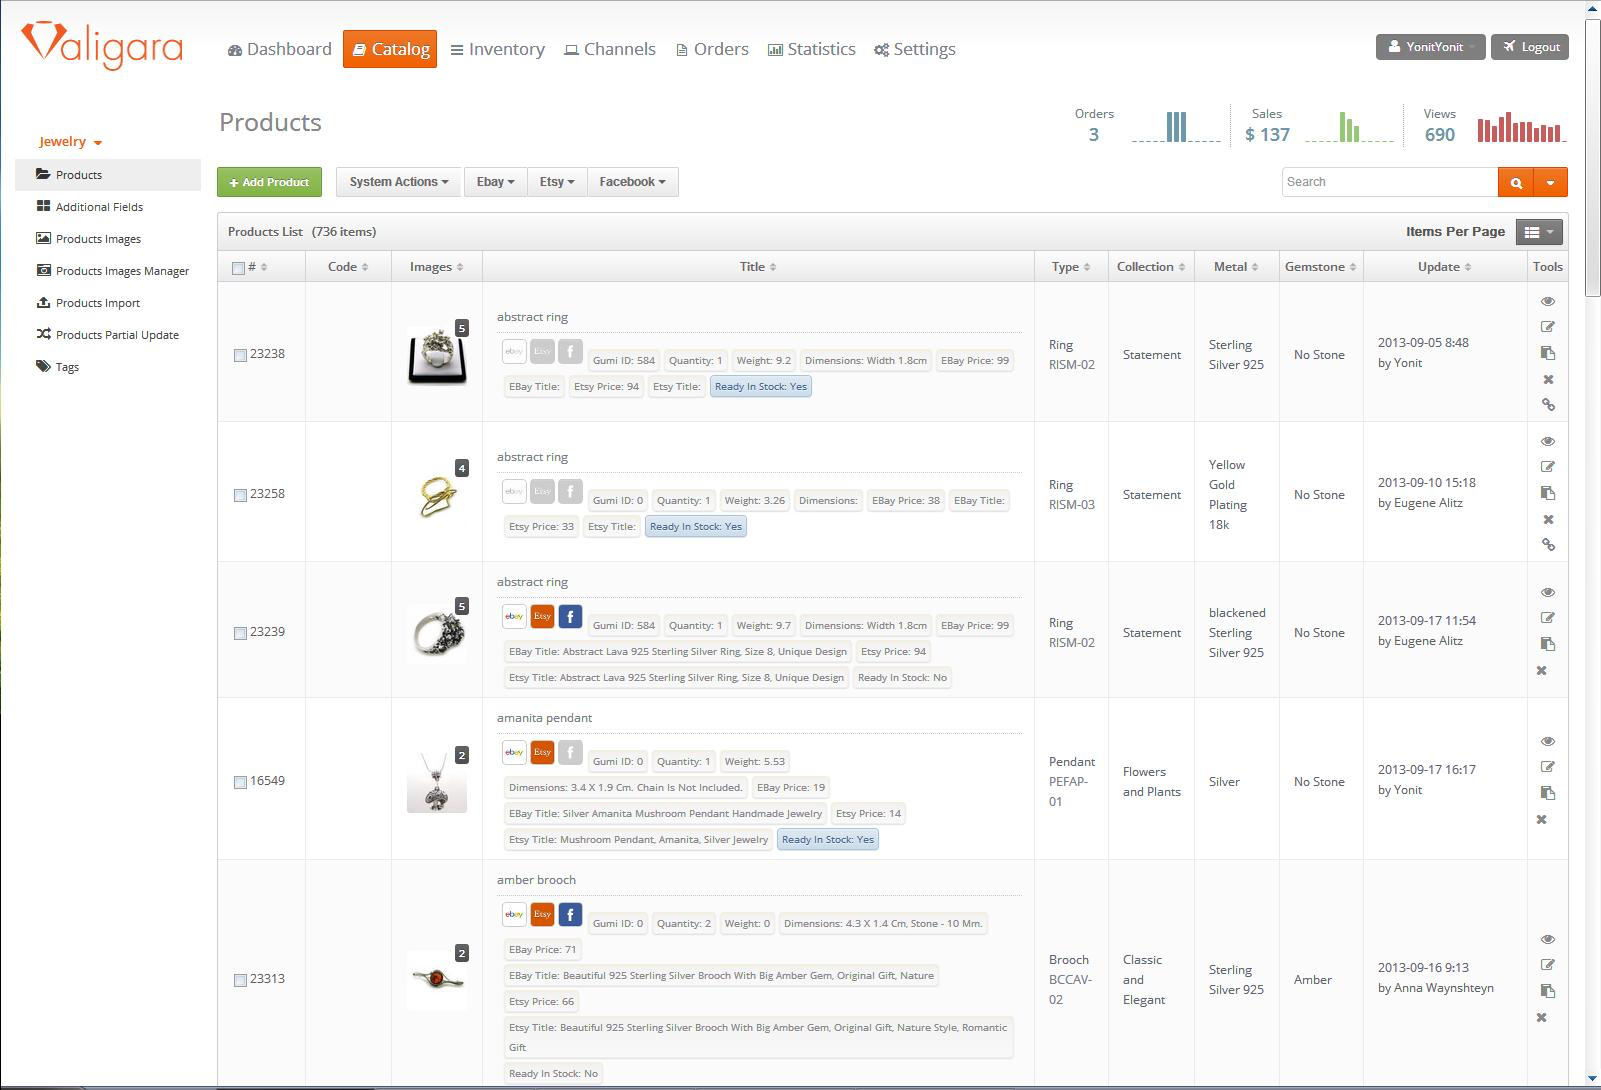 Valigara screenshot: Compile a detailed catalog, with integration to online marketplaces such as eBay, Etsy, Amazon, and more